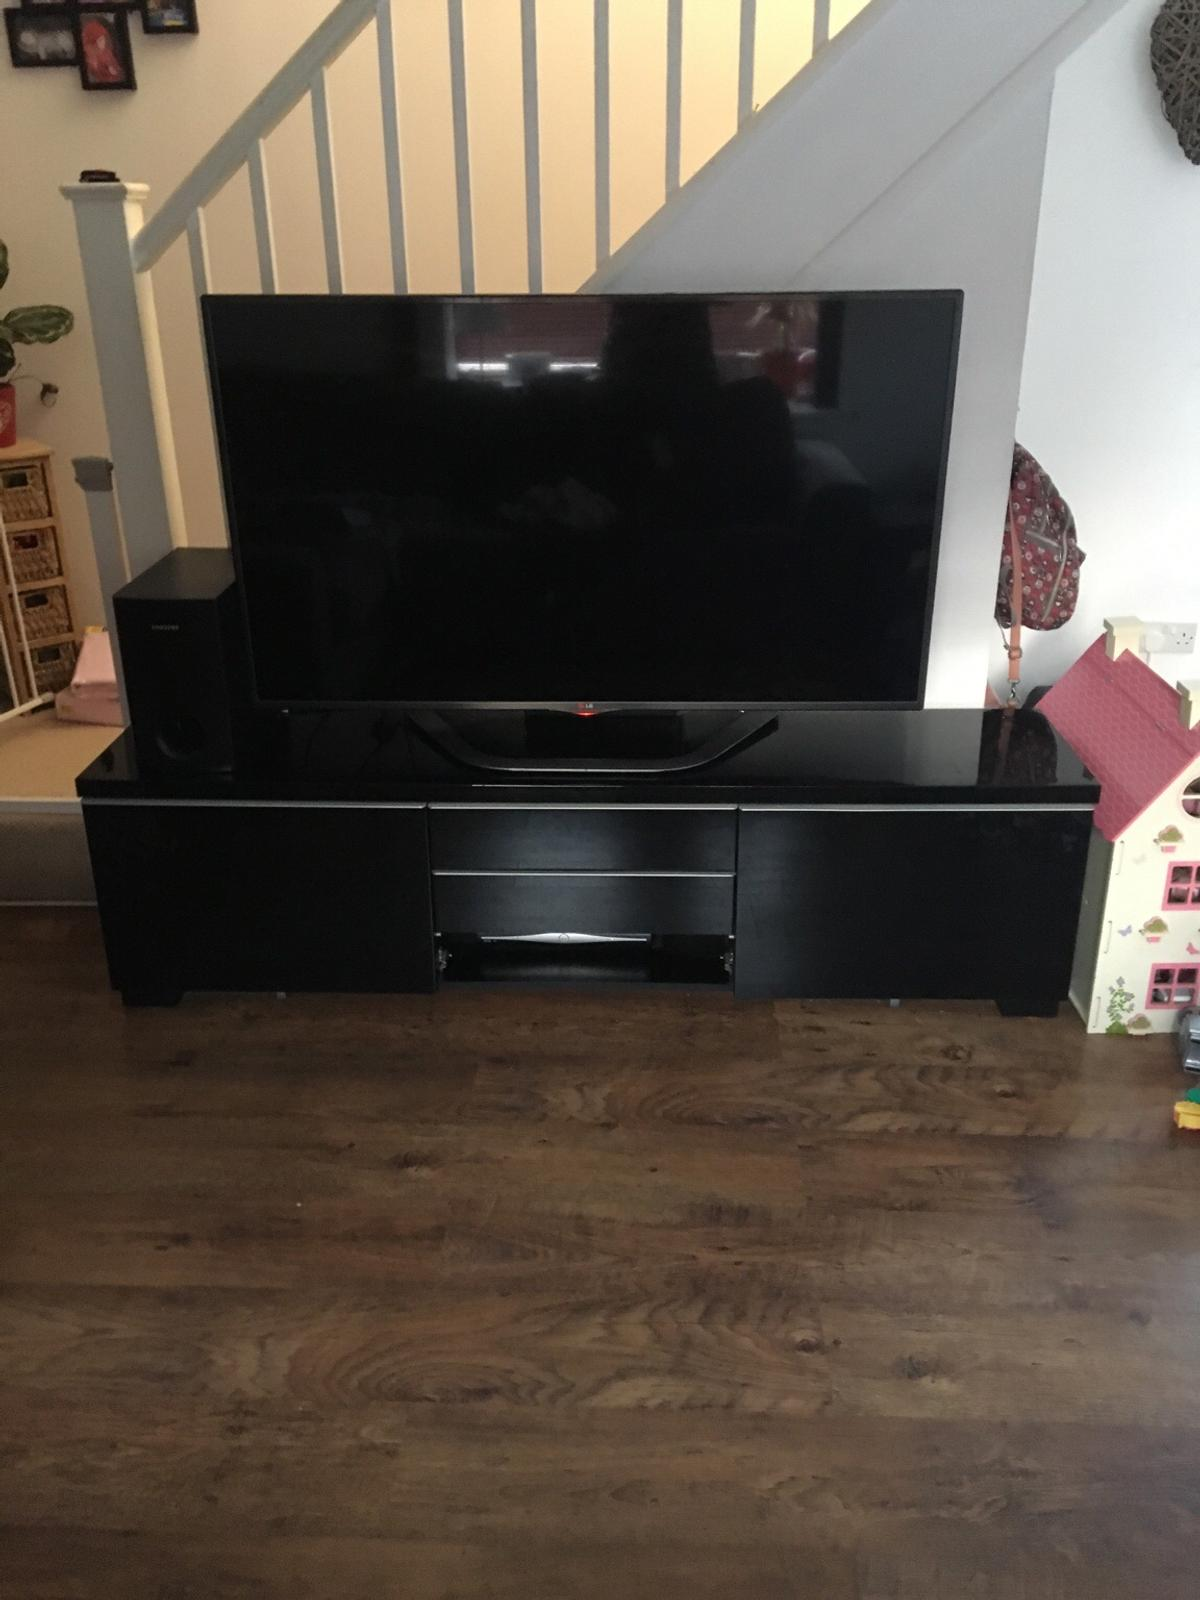 Magnificent Ikea Besta Burs Tv Unit Black Gloss In Stondon Massey For Andrewgaddart Wooden Chair Designs For Living Room Andrewgaddartcom